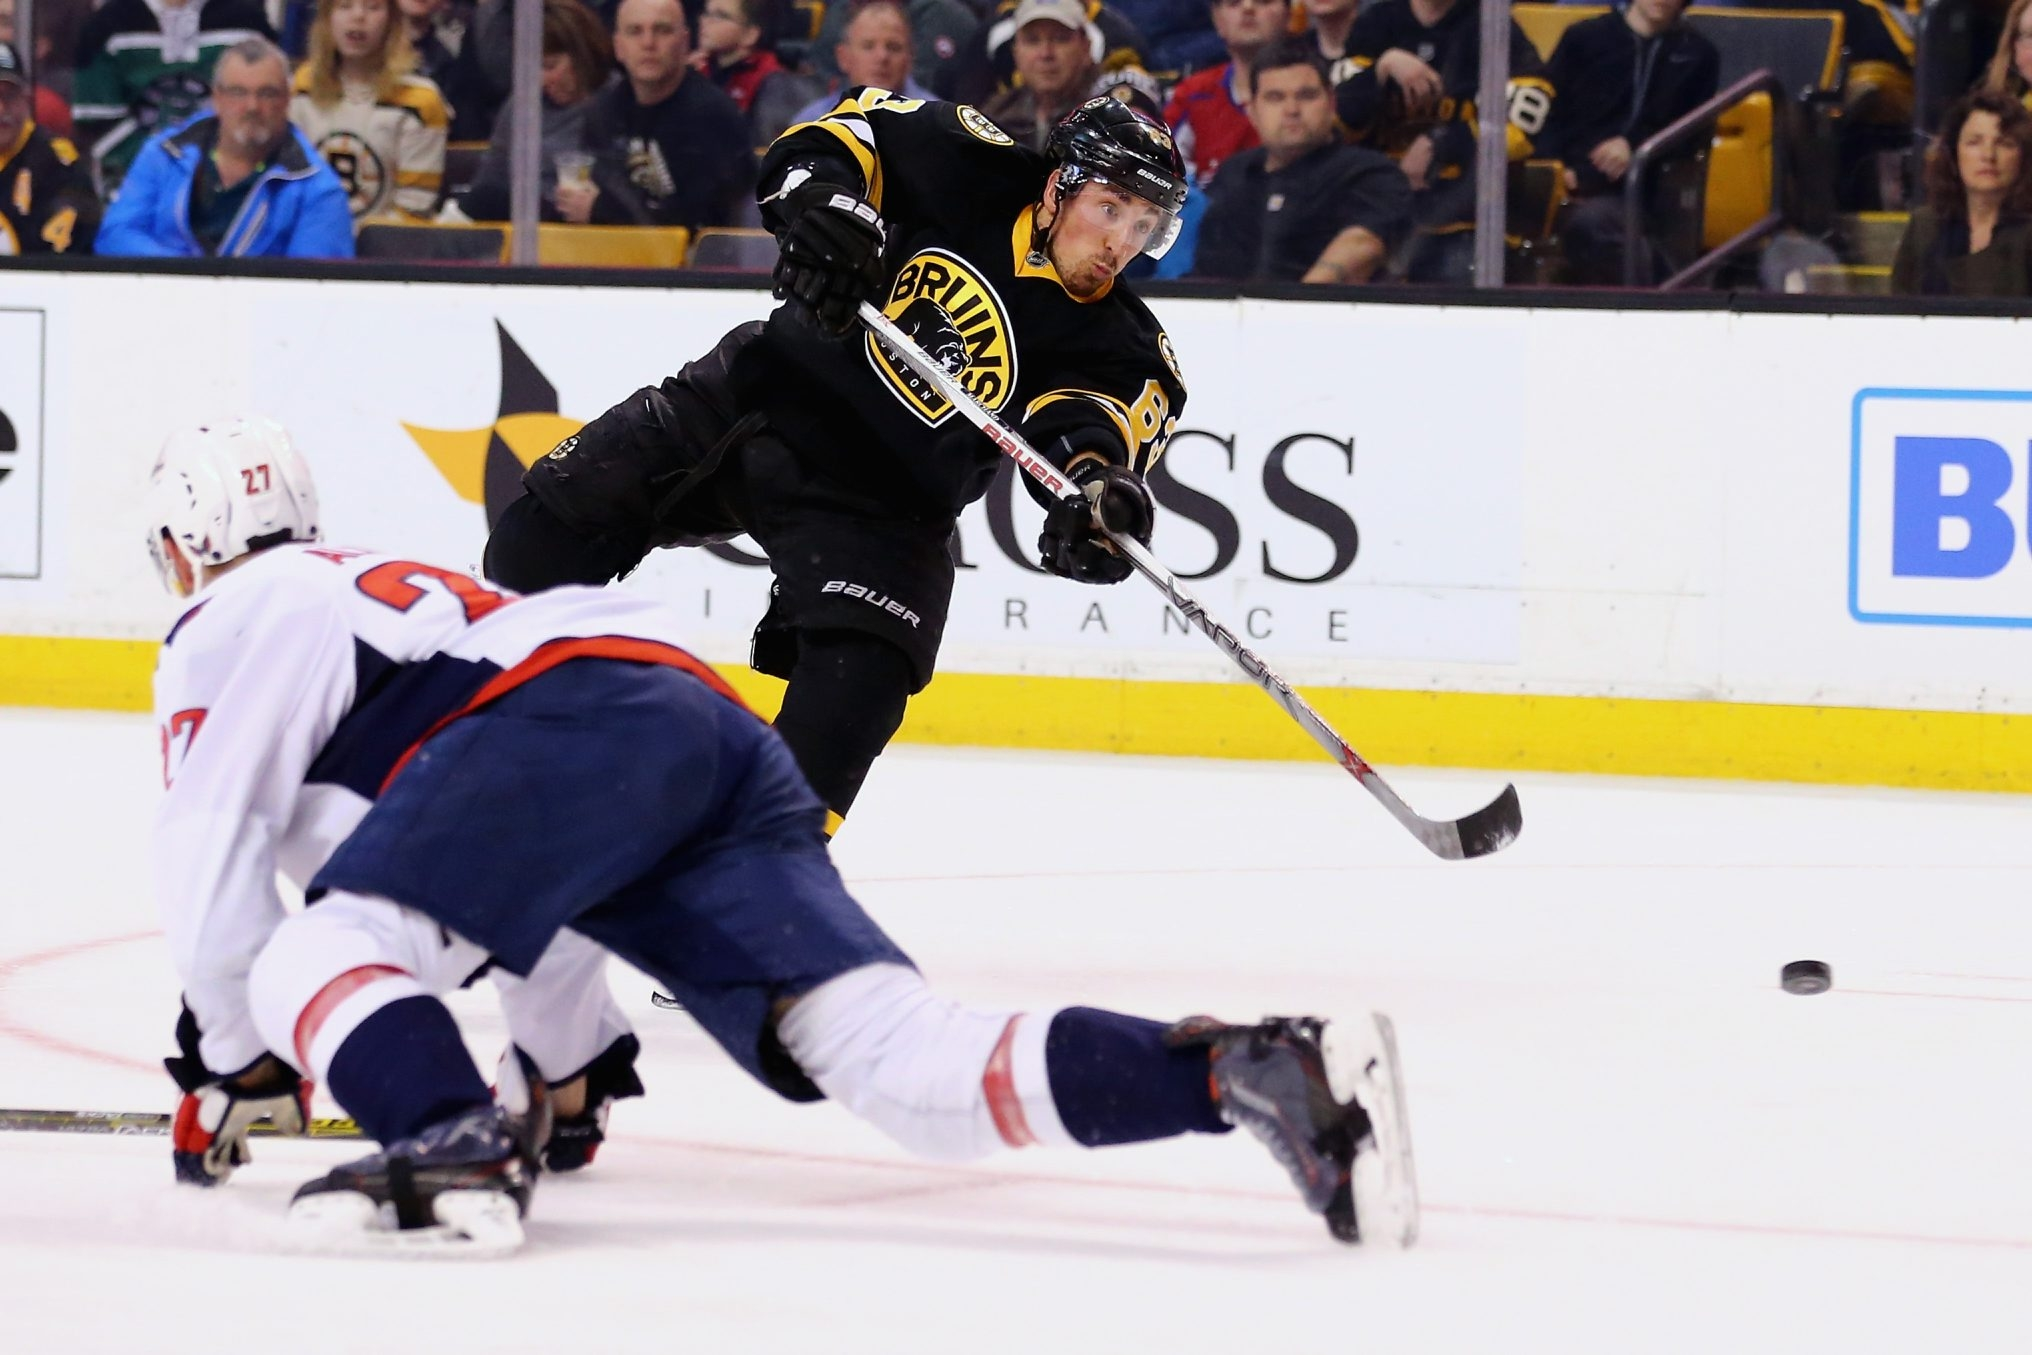 BOSTON, MA - MARCH 05:  Brad Marchand #63 of the Boston Bruins takes a shot against the Washington Capitals during the third period at TD Garden on March 5, 2016 in Boston, Massachusetts.  (Photo by Maddie Meyer/Getty Images)